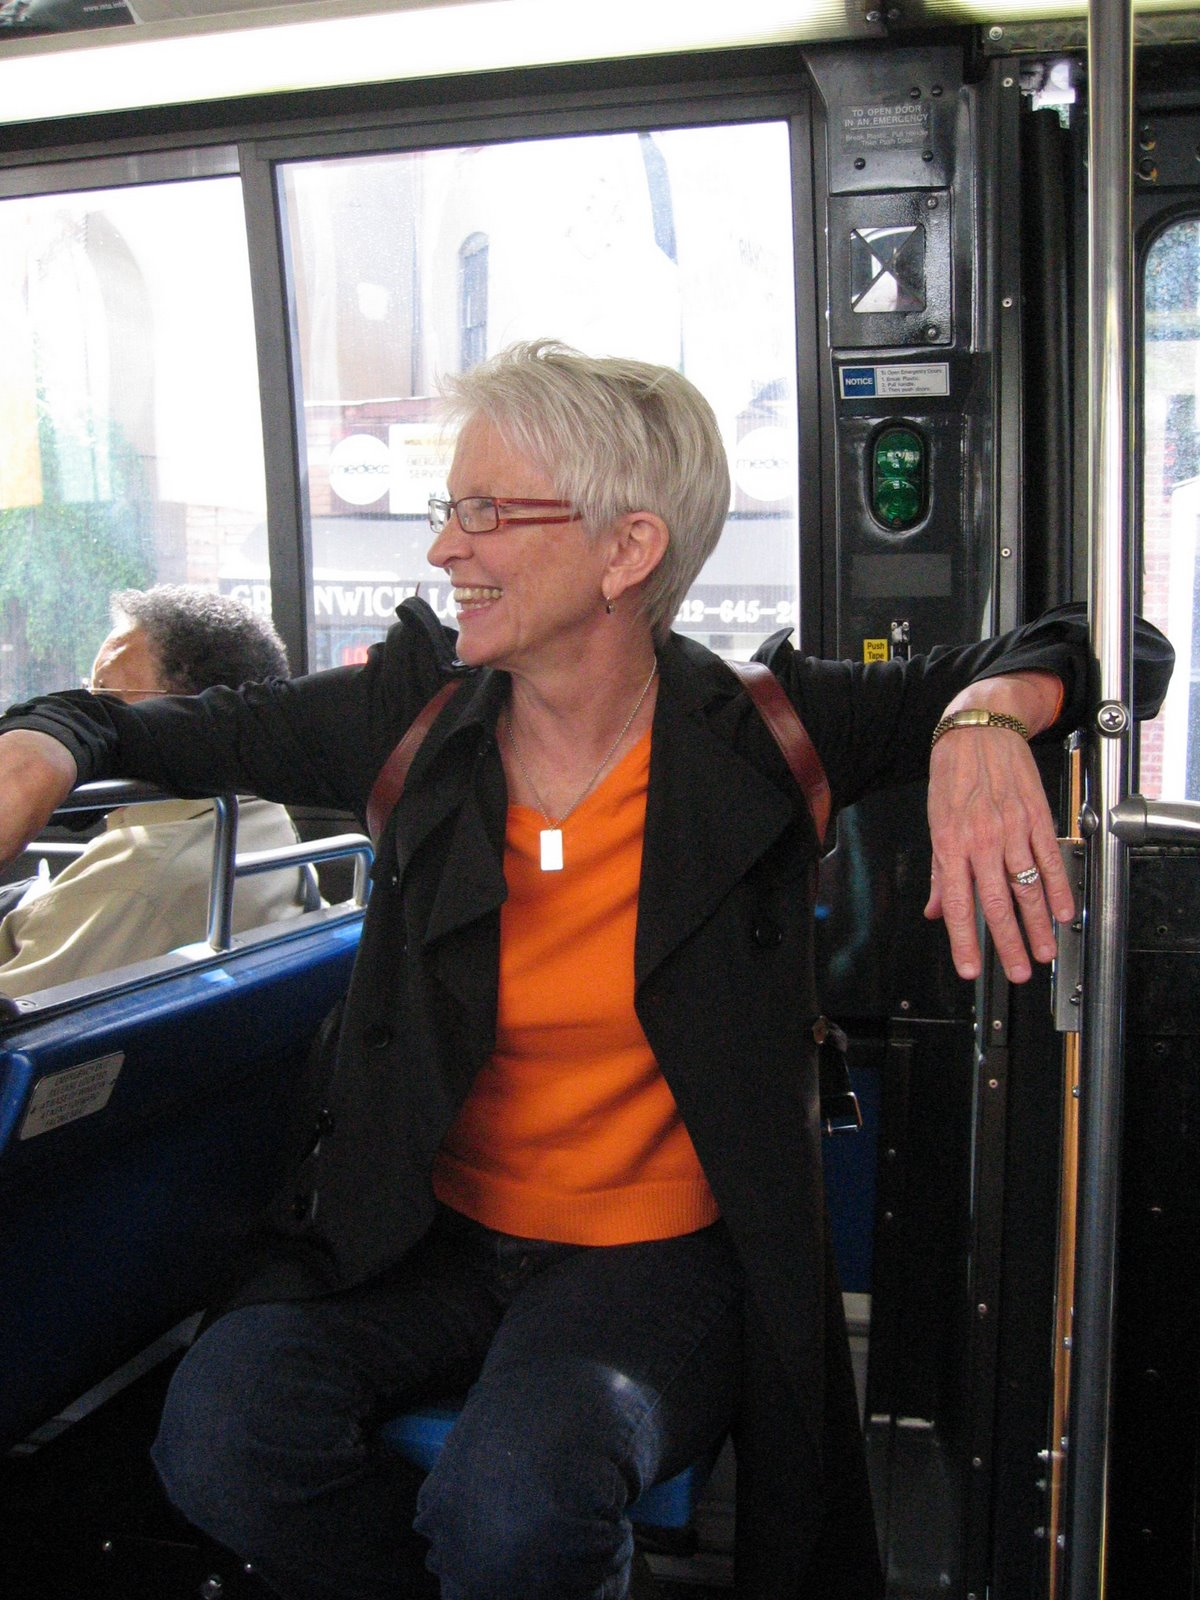 [Mom+perches+with+excitement+on+the+downtown+bus]